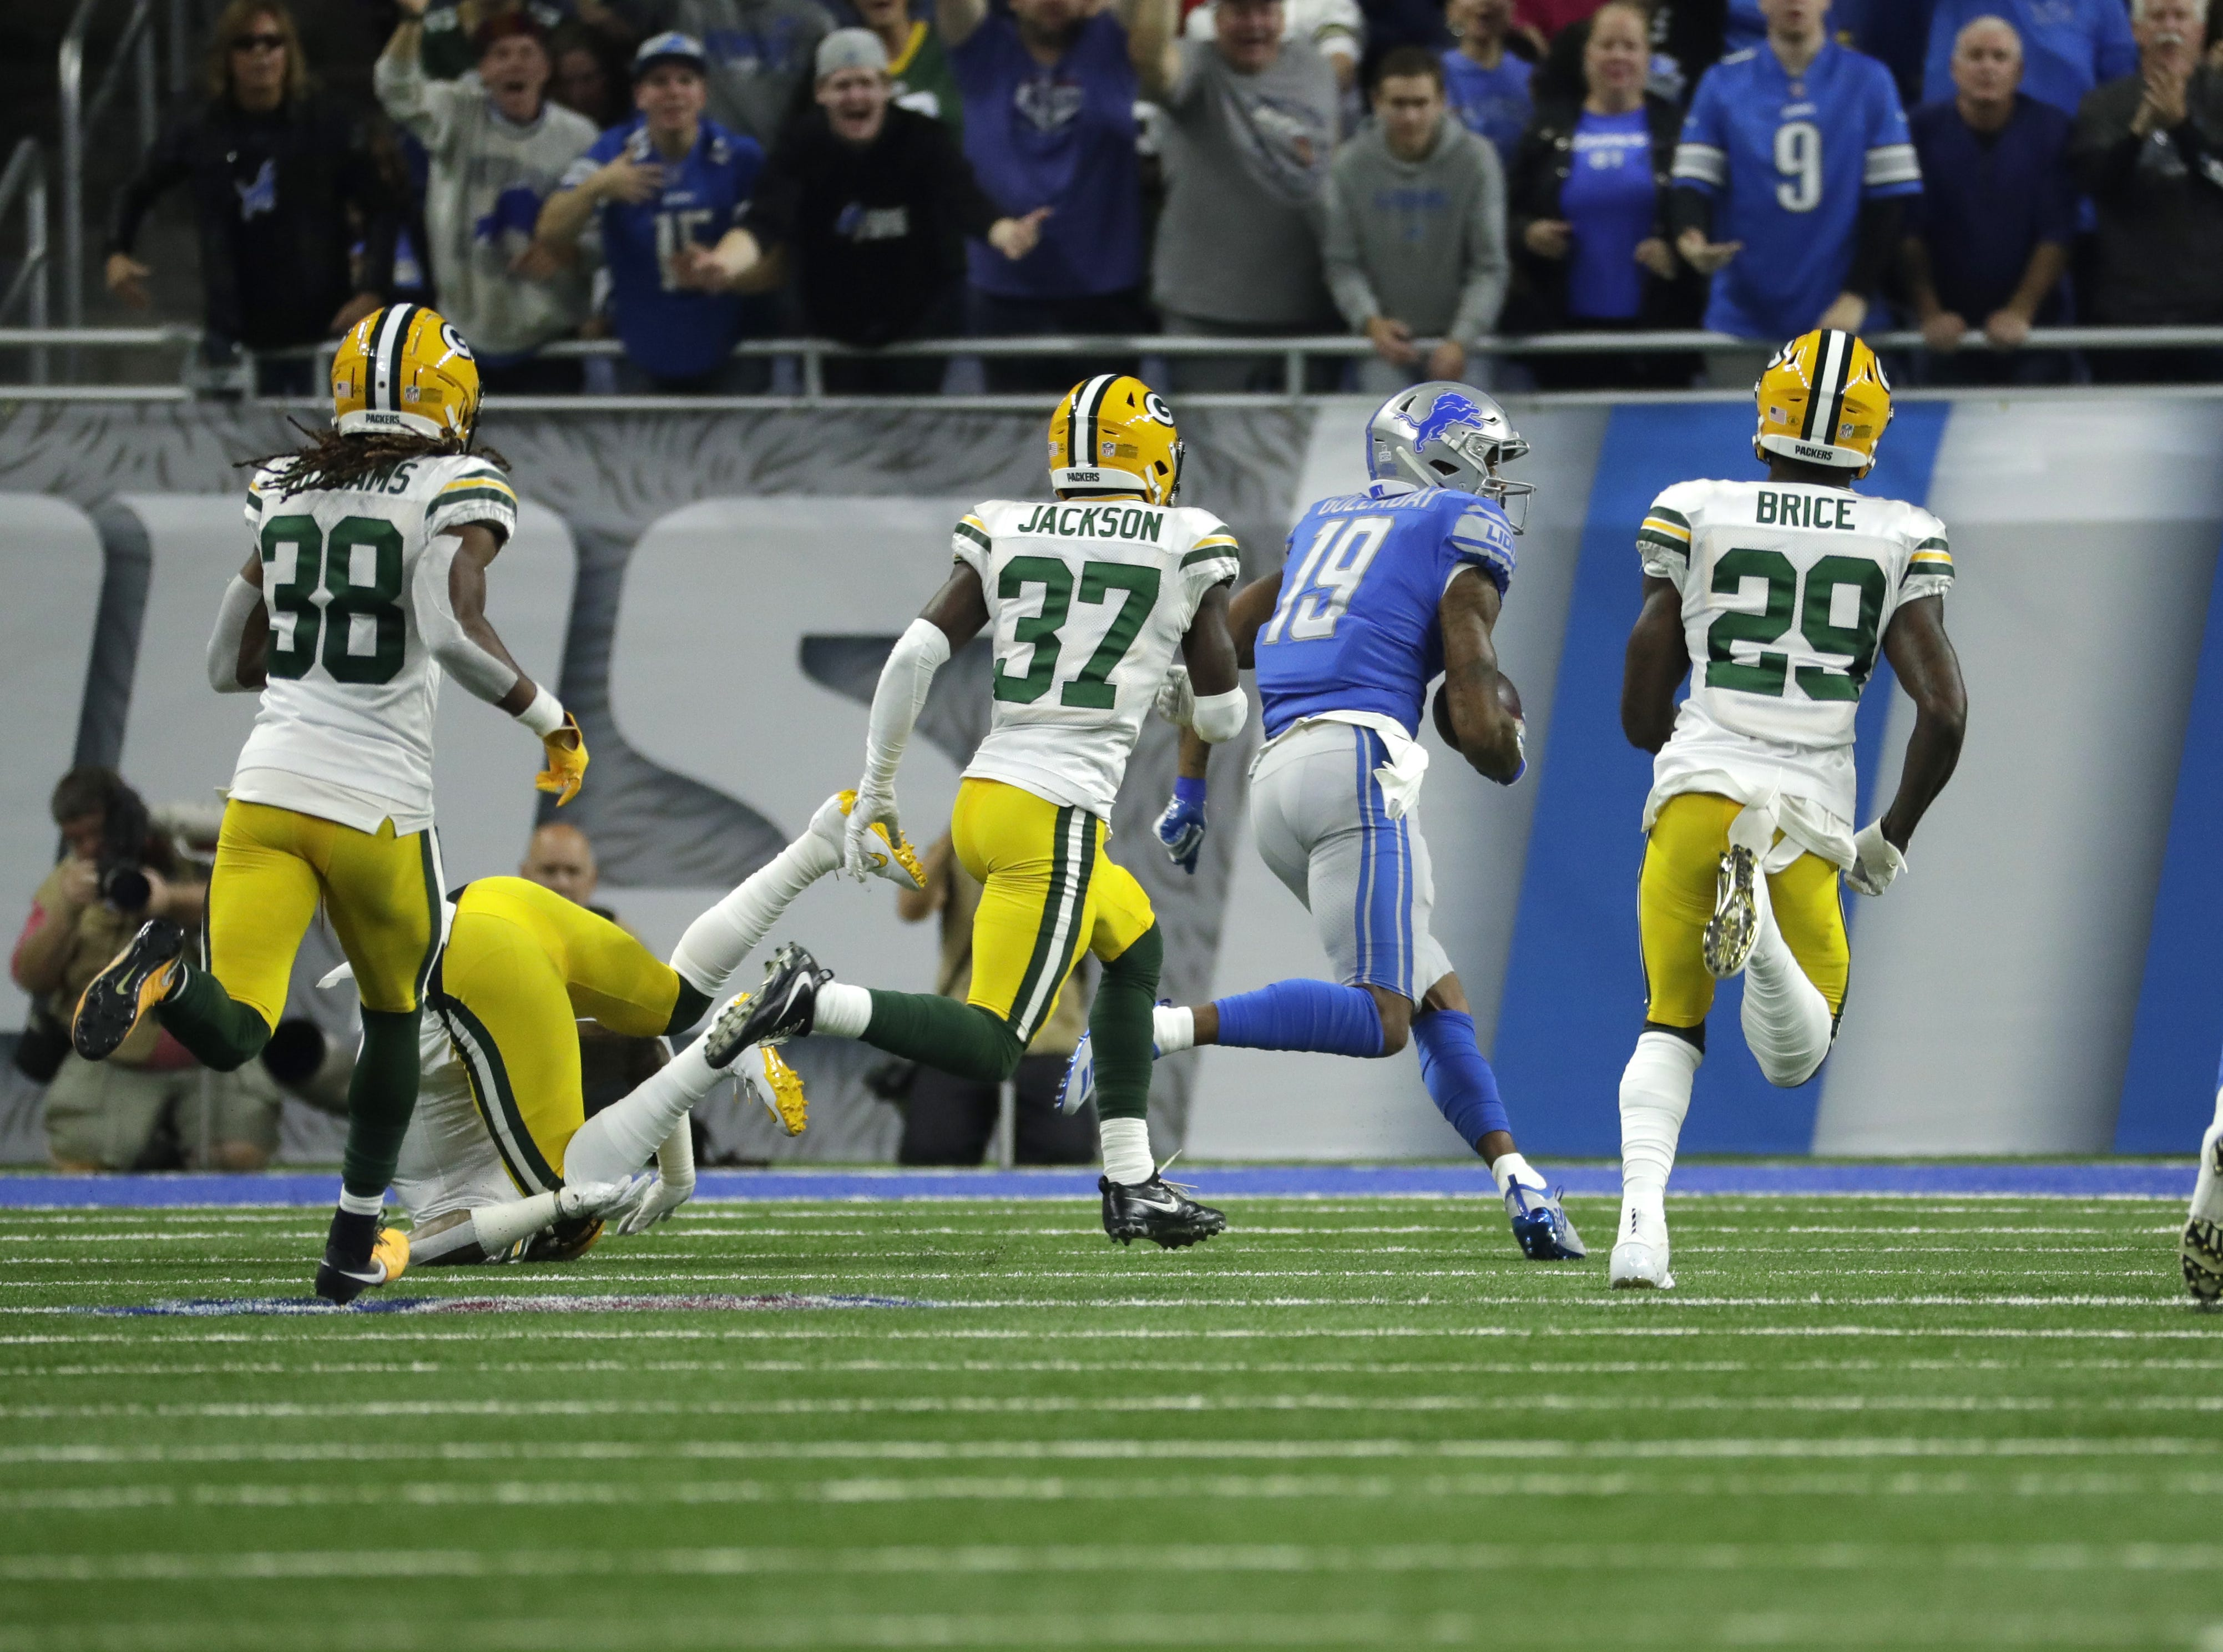 Detroit Lions wide receiver Kenny Golladay (19) scores a td during the Green Bay Packers vs. Detroit Lions NFL game at Ford Field, Detroit, Sunday, October 7, 2018.